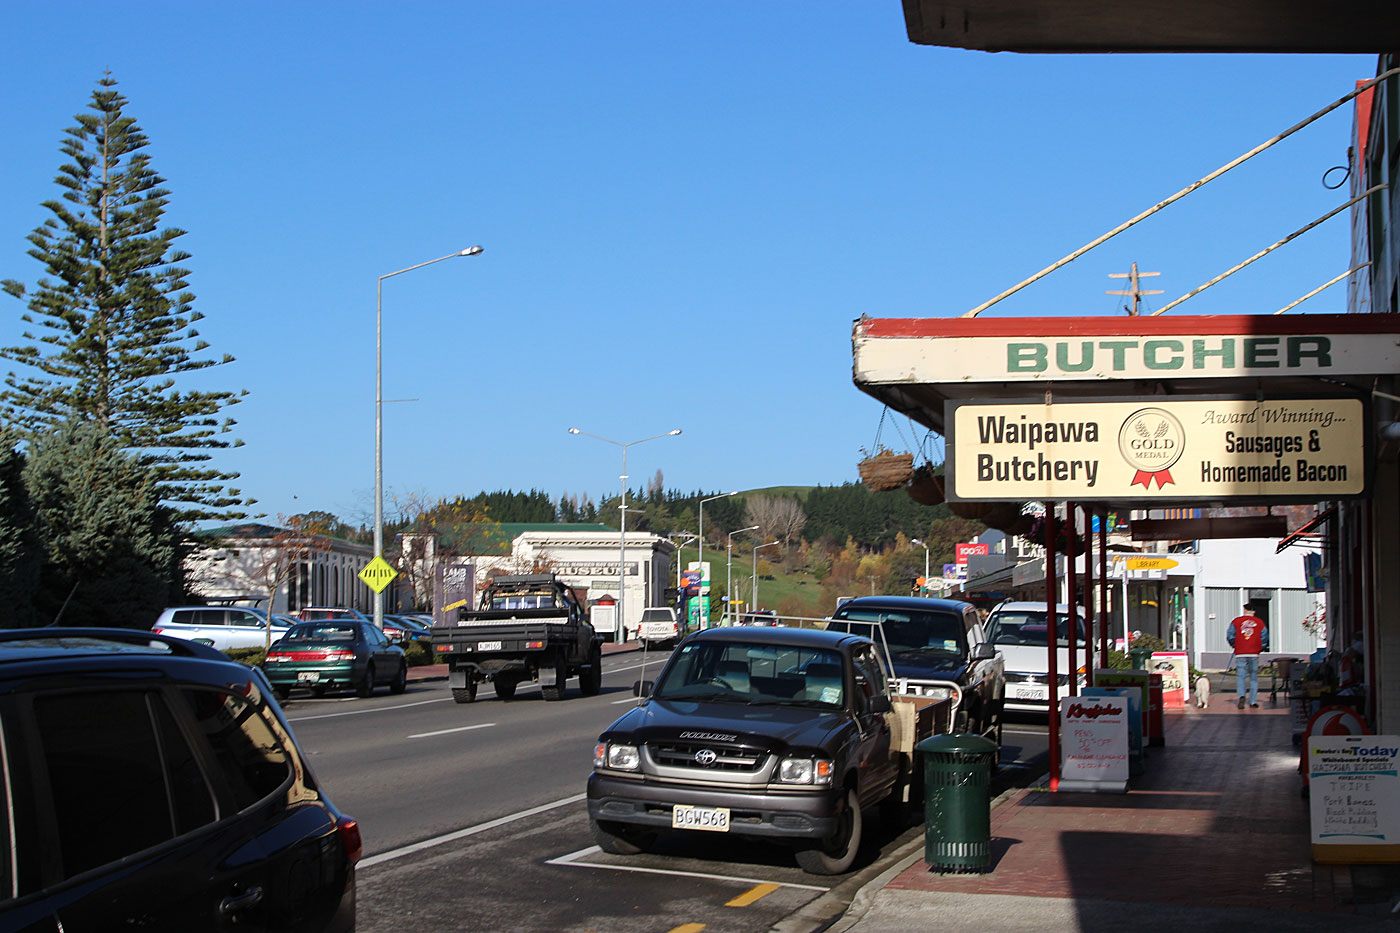 An unlikely batsman's paradise: a street in Waipawa